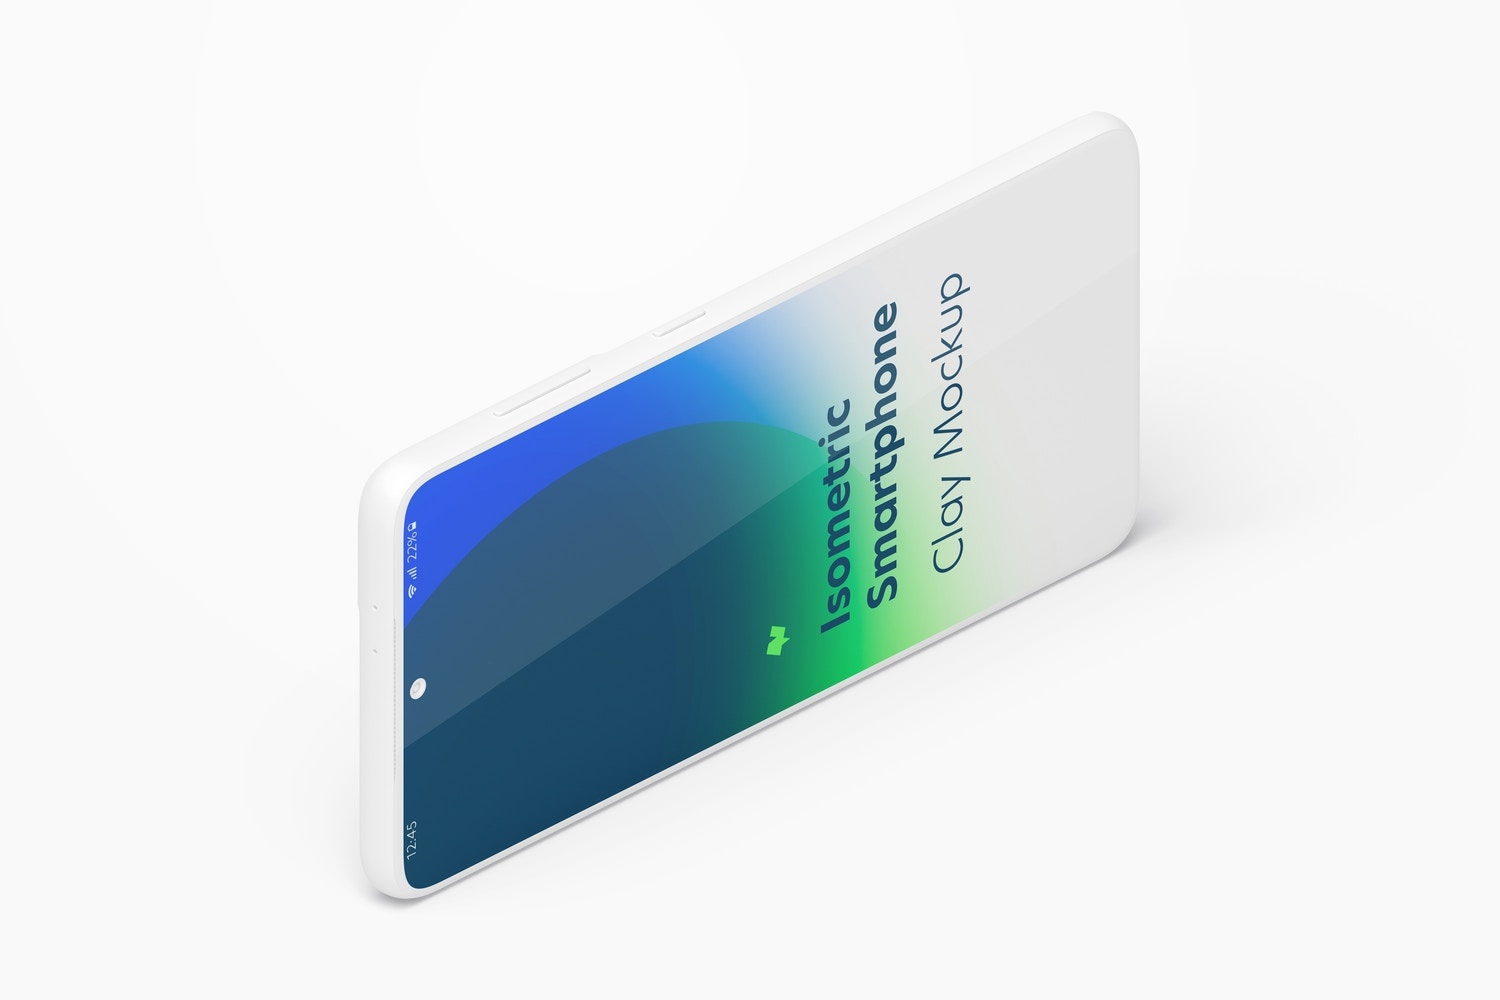 Isometric Clay Samsung S21 Mockup, Landscape Left View